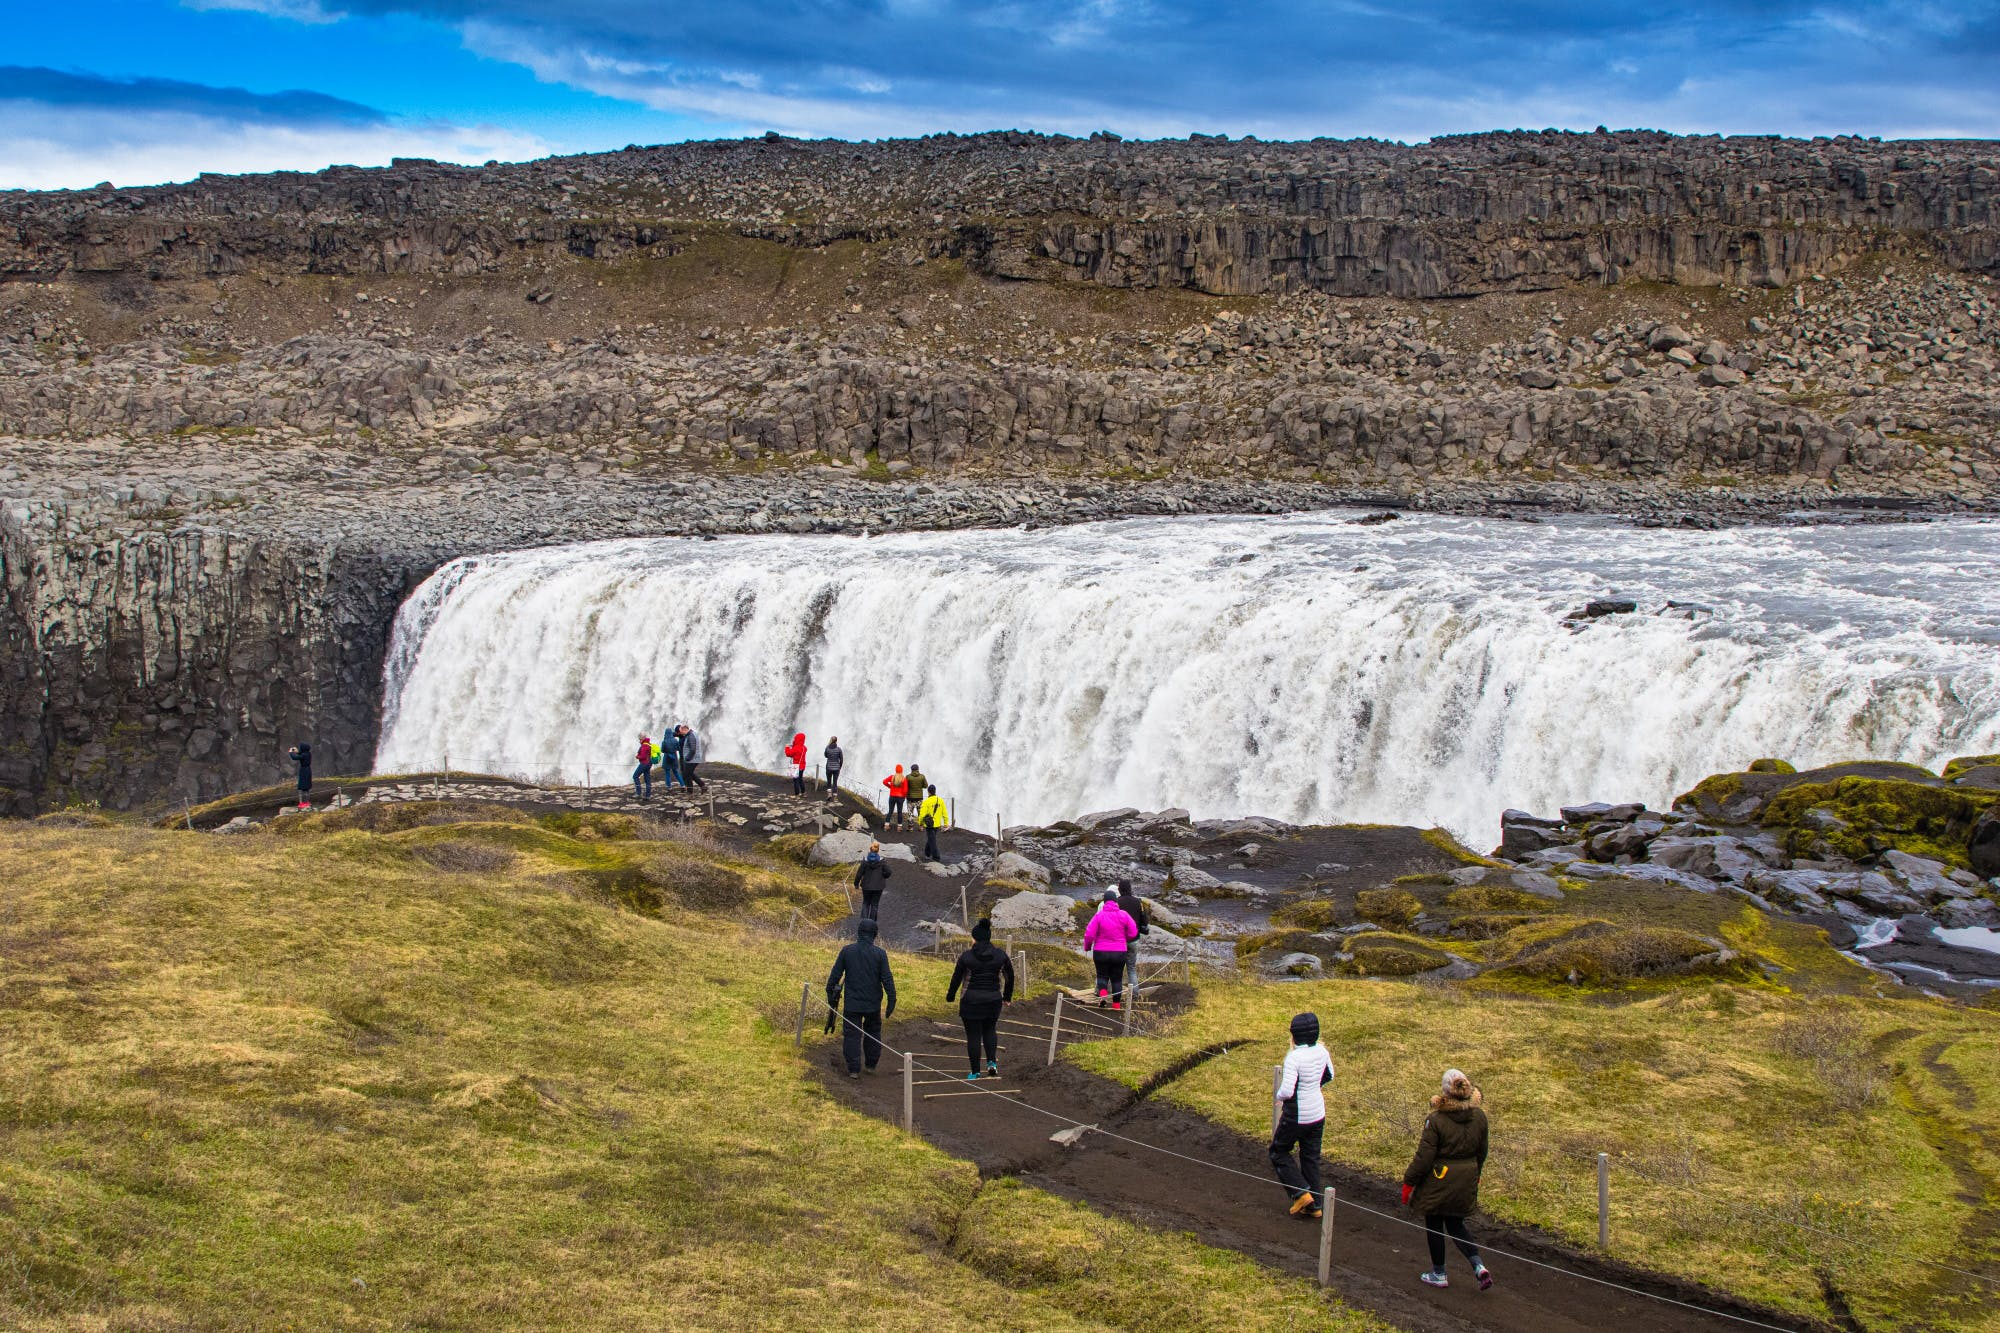 People at Dettifoss waterfall